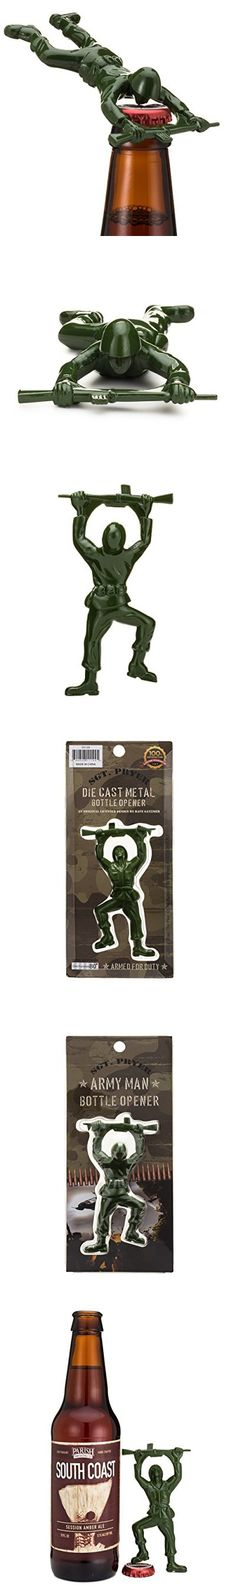 Sgt. Pryer Green Army Man Bottle Opener, Fun Unique Gifts for Men - Cool Beer Gifts